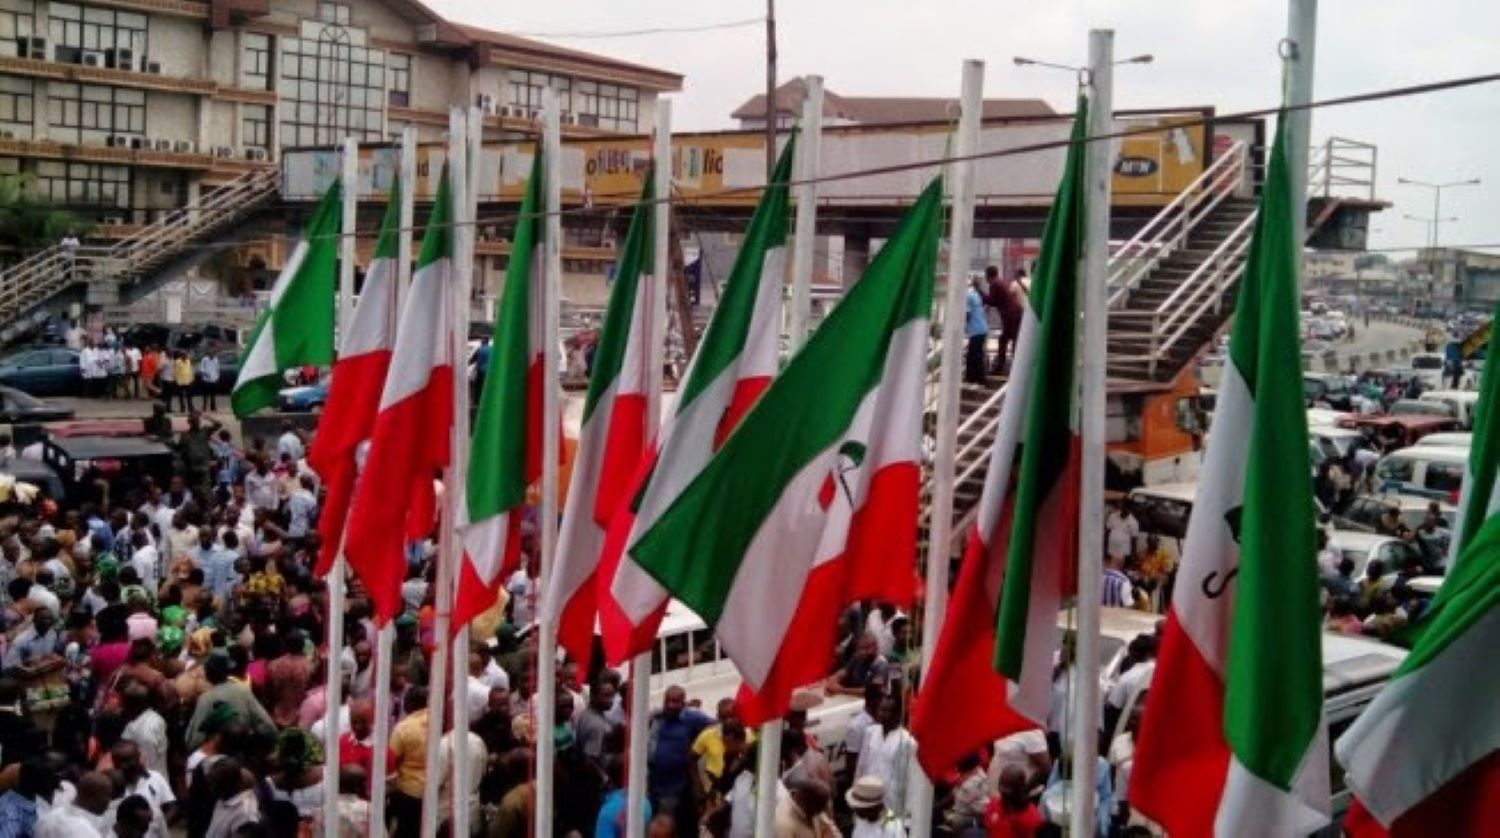 ONDO 2020: Uneasy calm pervades Ondo PDP over deputy governor's slot - Vanguard